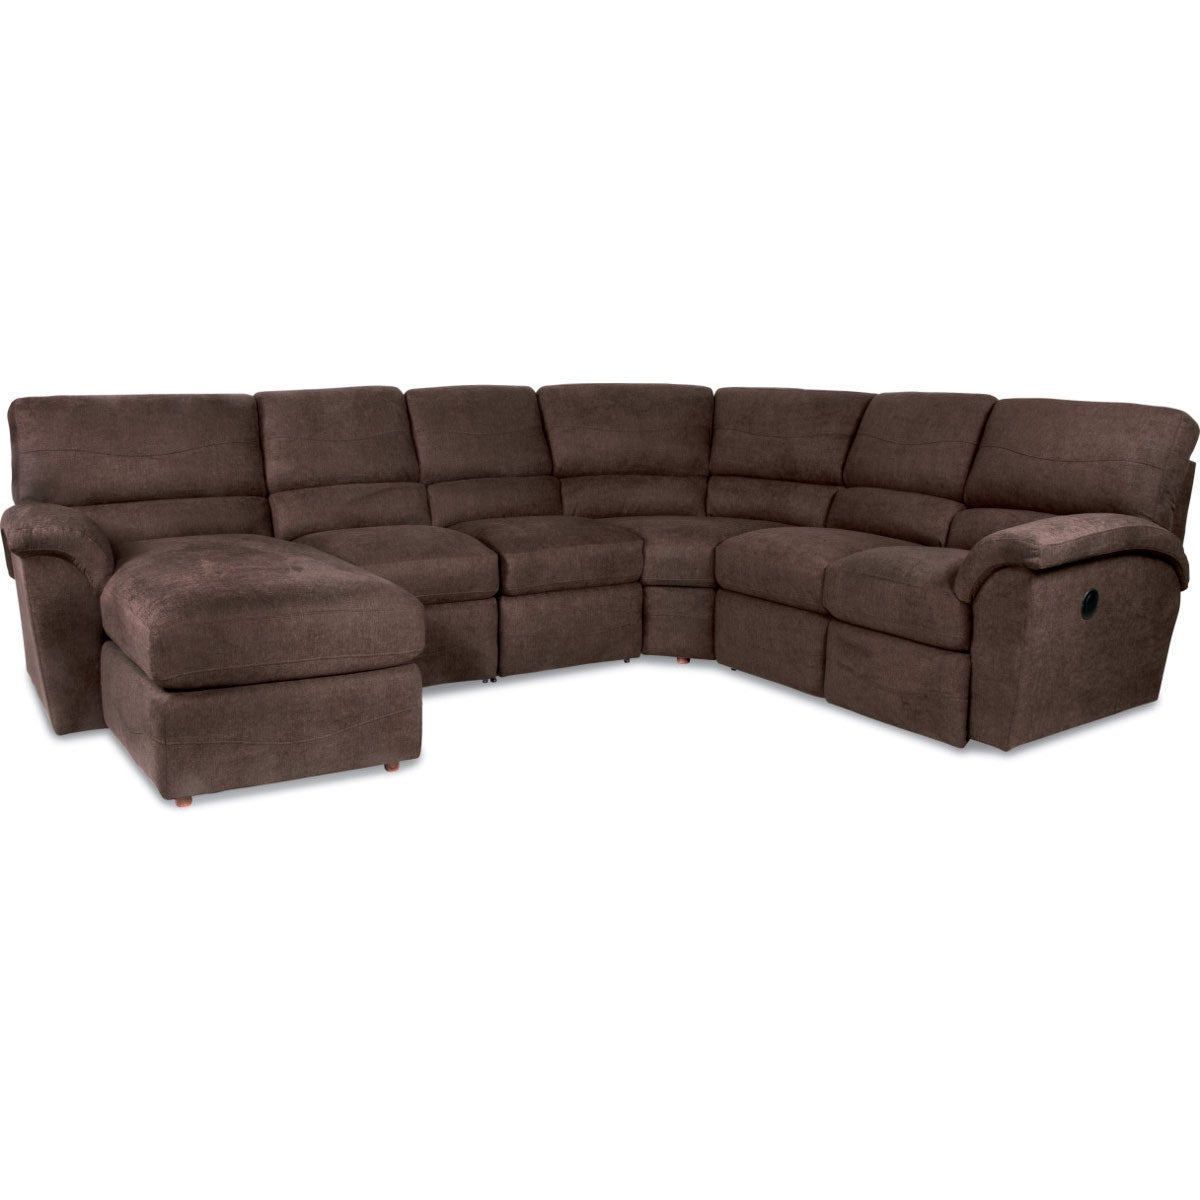 Lazy Boy Reese Sofa Lazy Boy Leather Reclining Sofa Centerfieldbar Thesofa